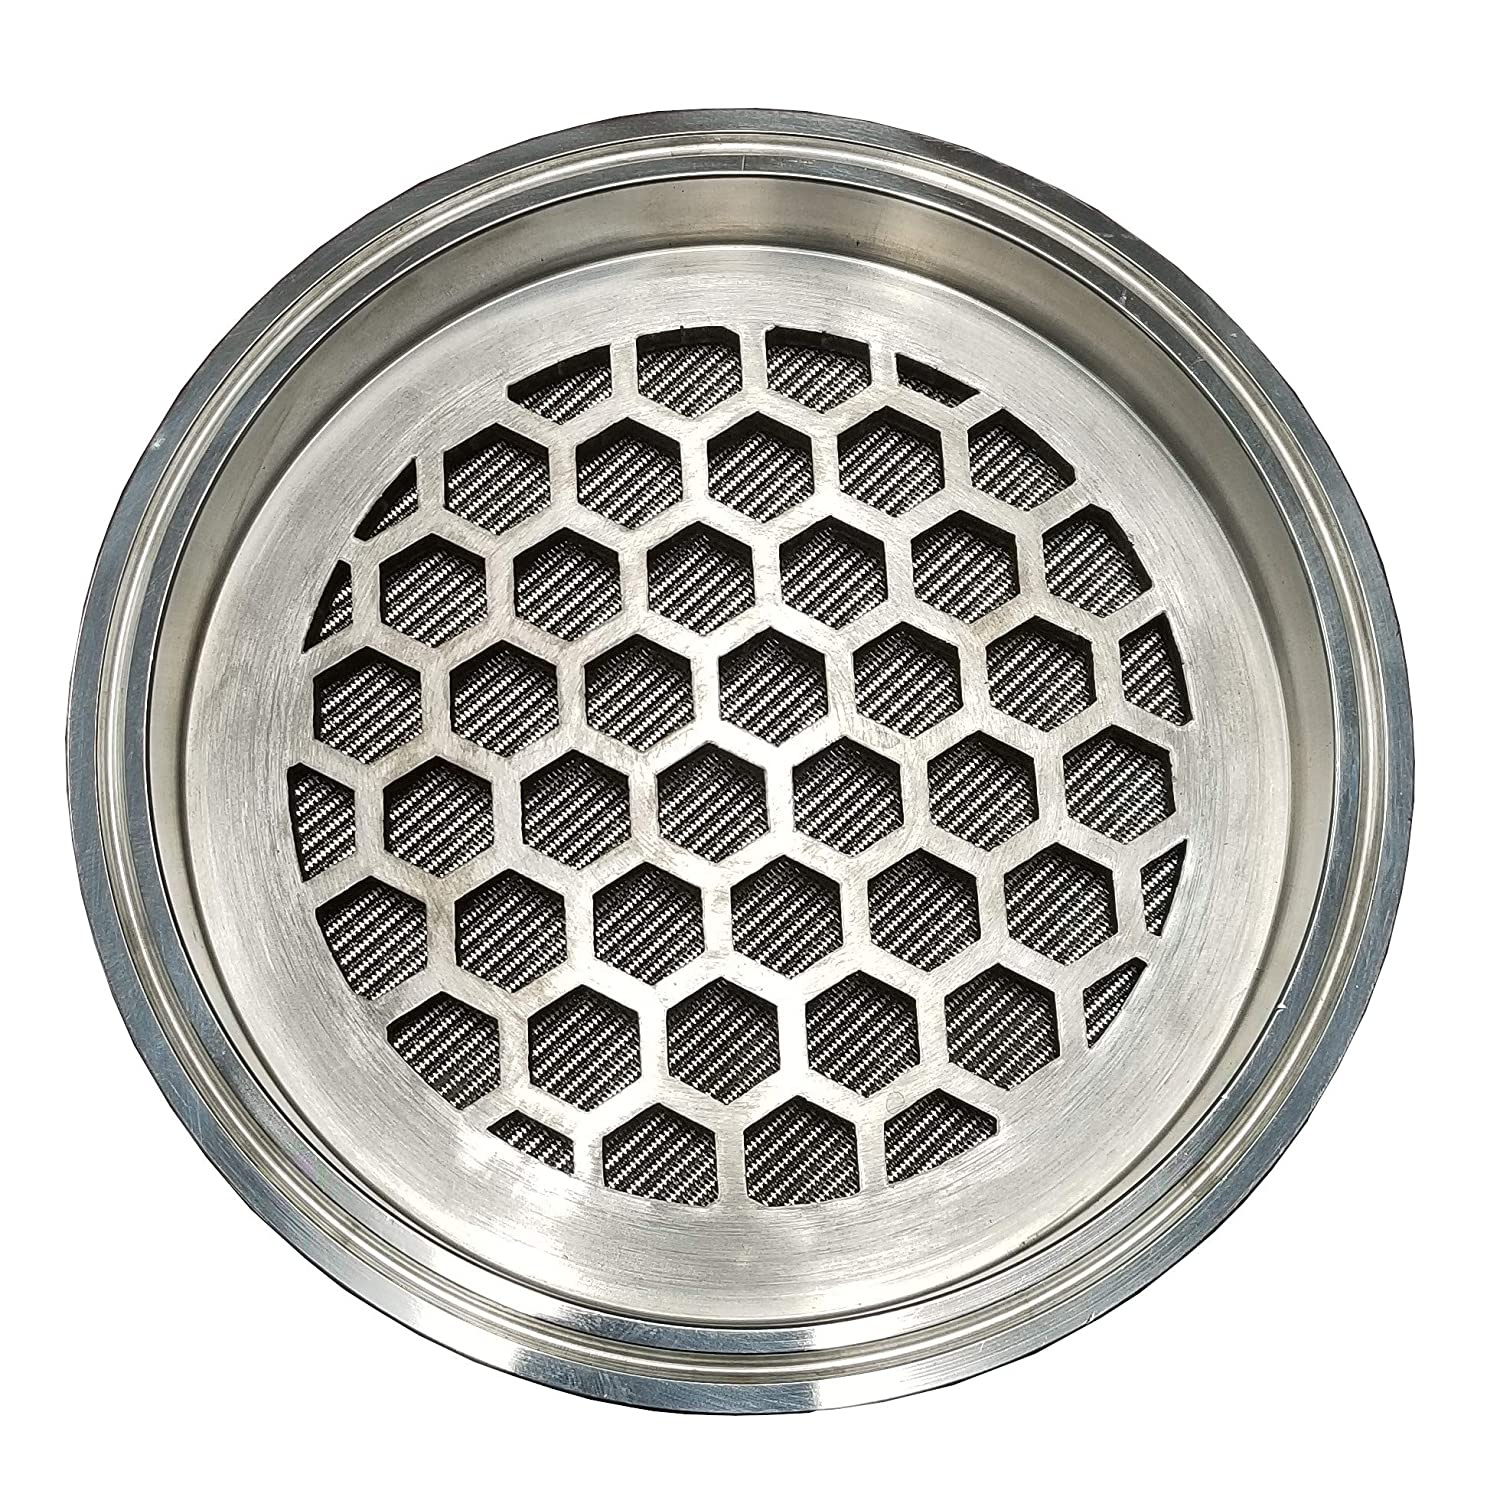 6 5 Micron Sintered Mesh Filter Plate for CRC